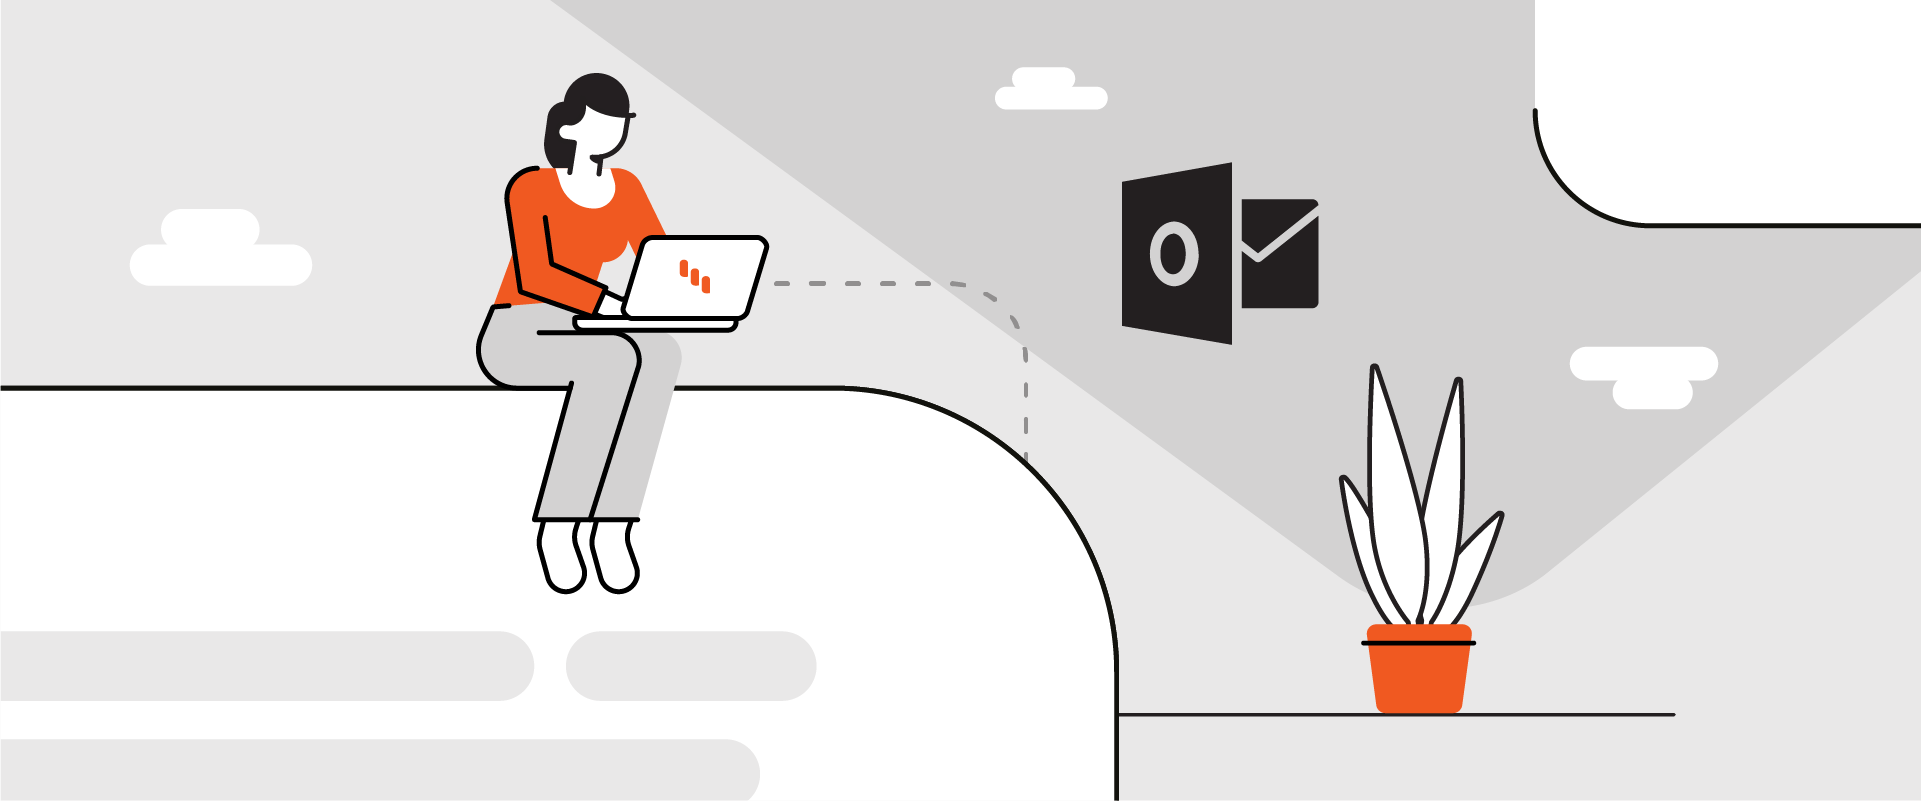 How to add rounded corners to containers in Outlook